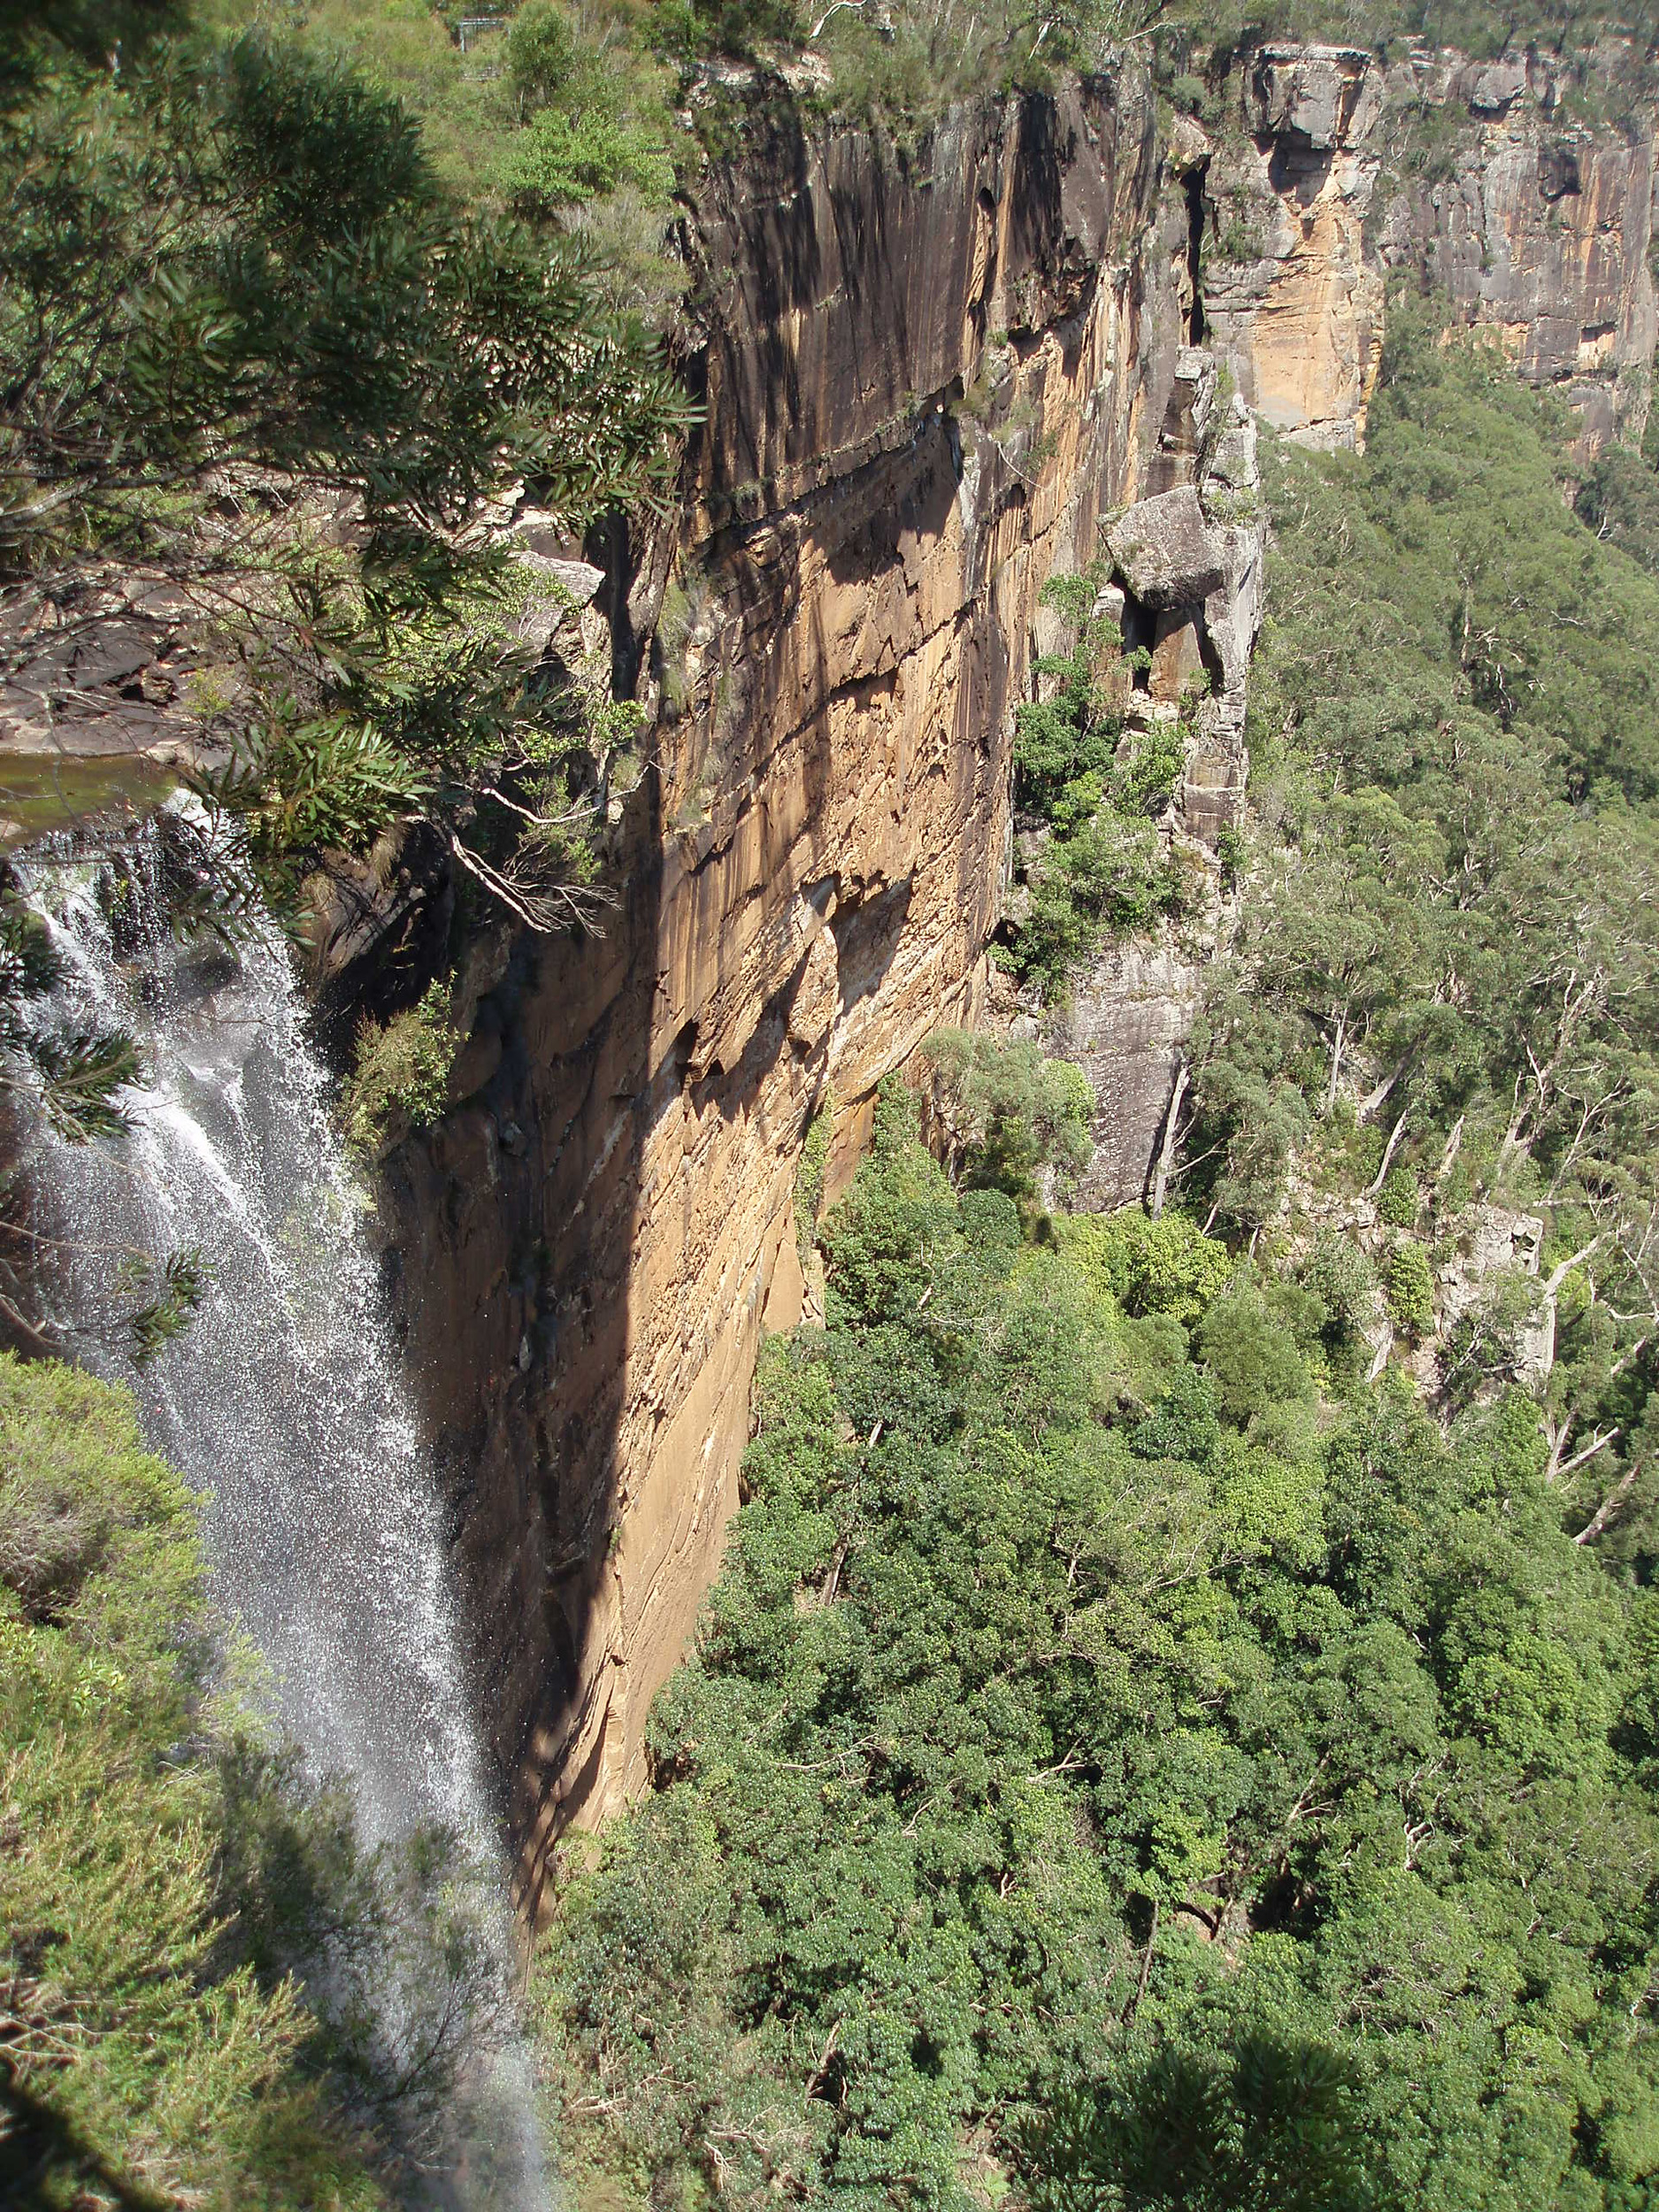 fitzroy falls, Morton National Park, Southern Highlands, NSW